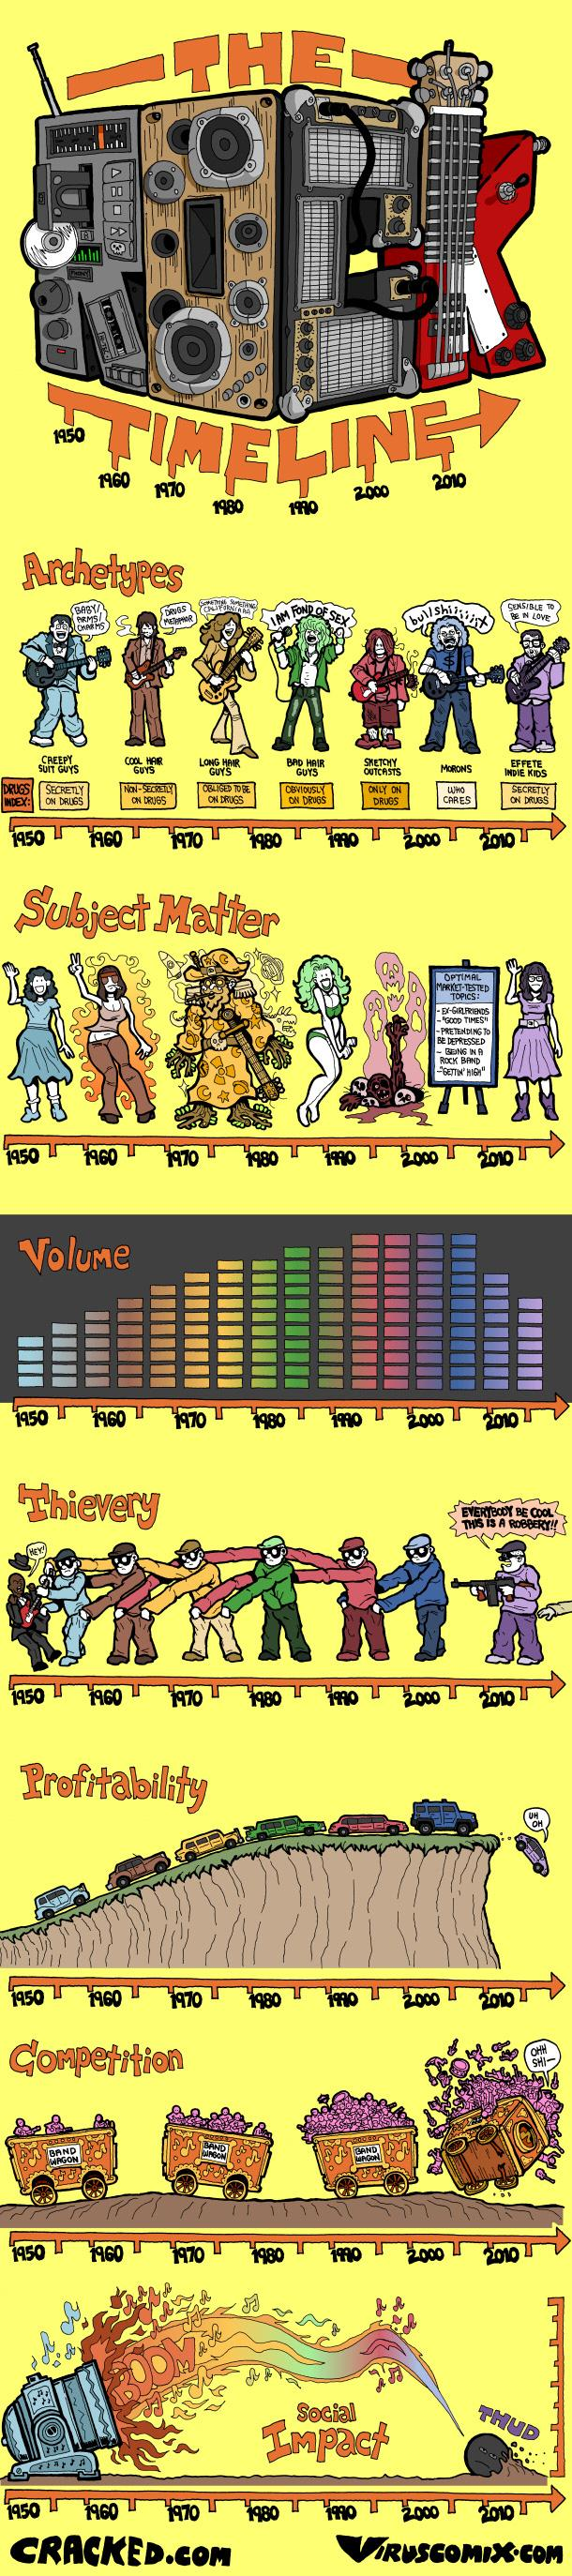 The Rock Music Timeline